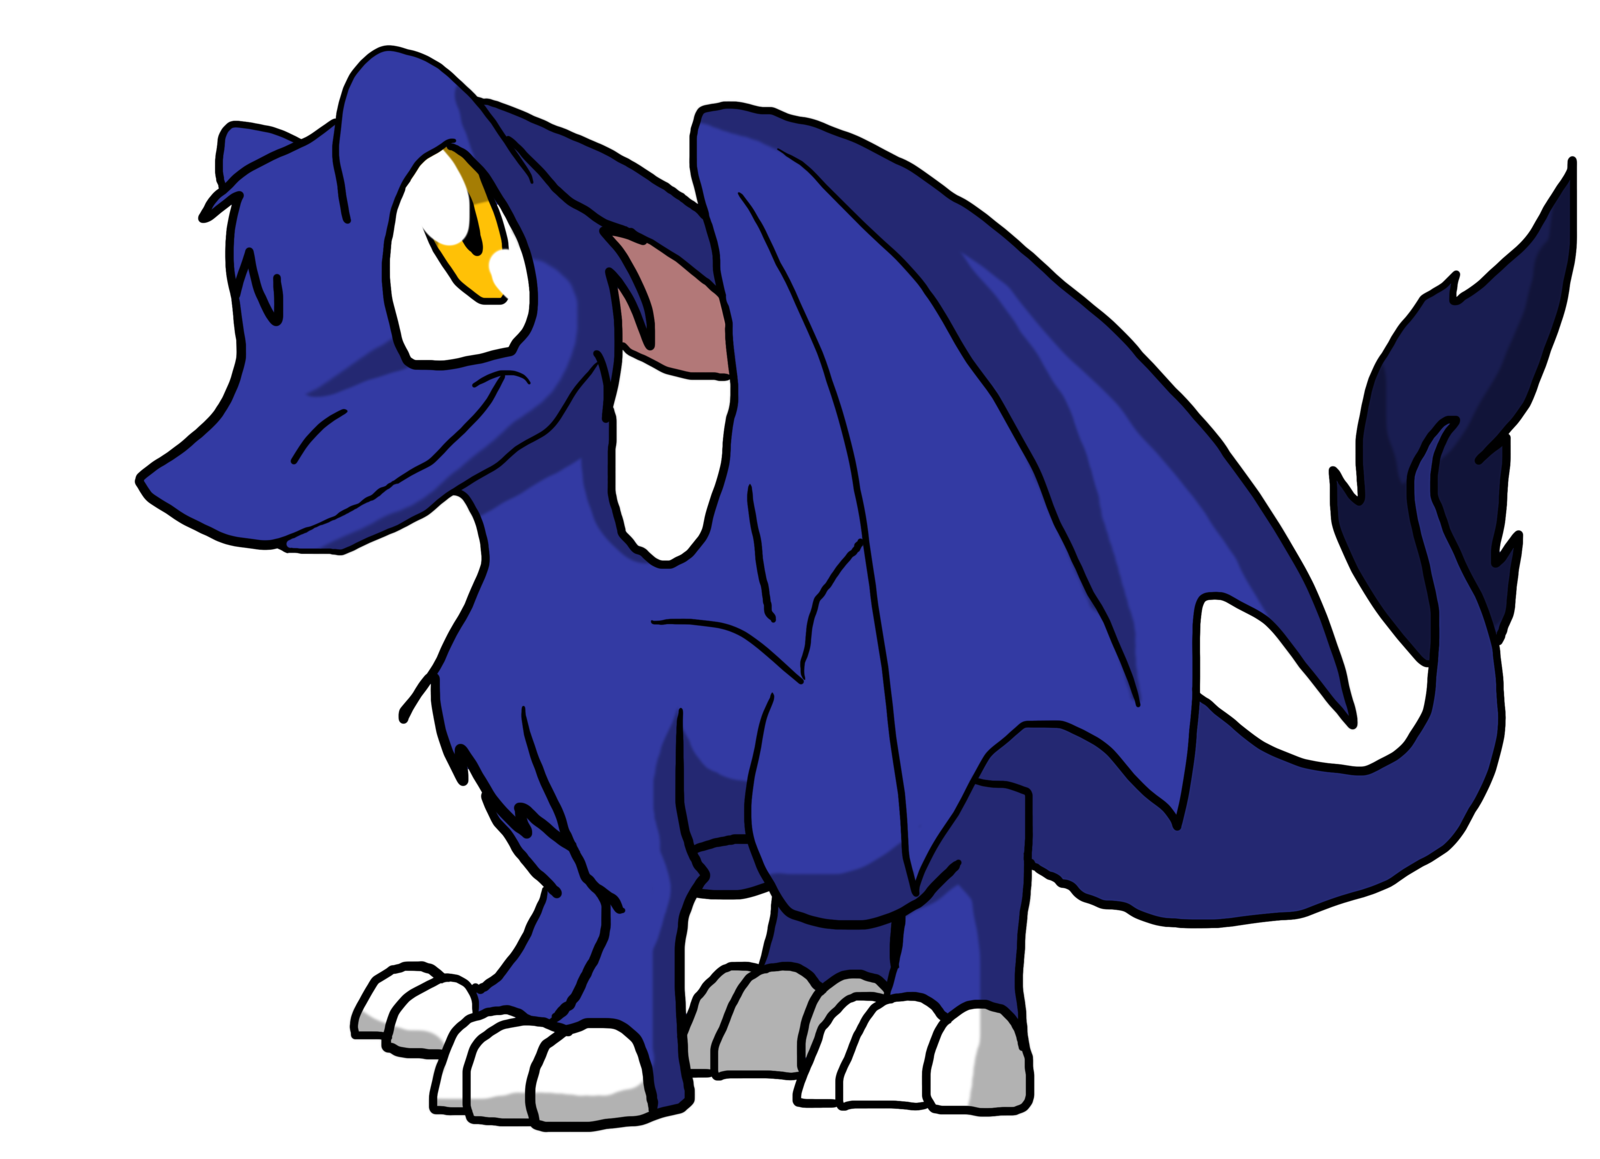 Furry Dragon Pics digital download - blueberry sd furry dragon and 50 similar